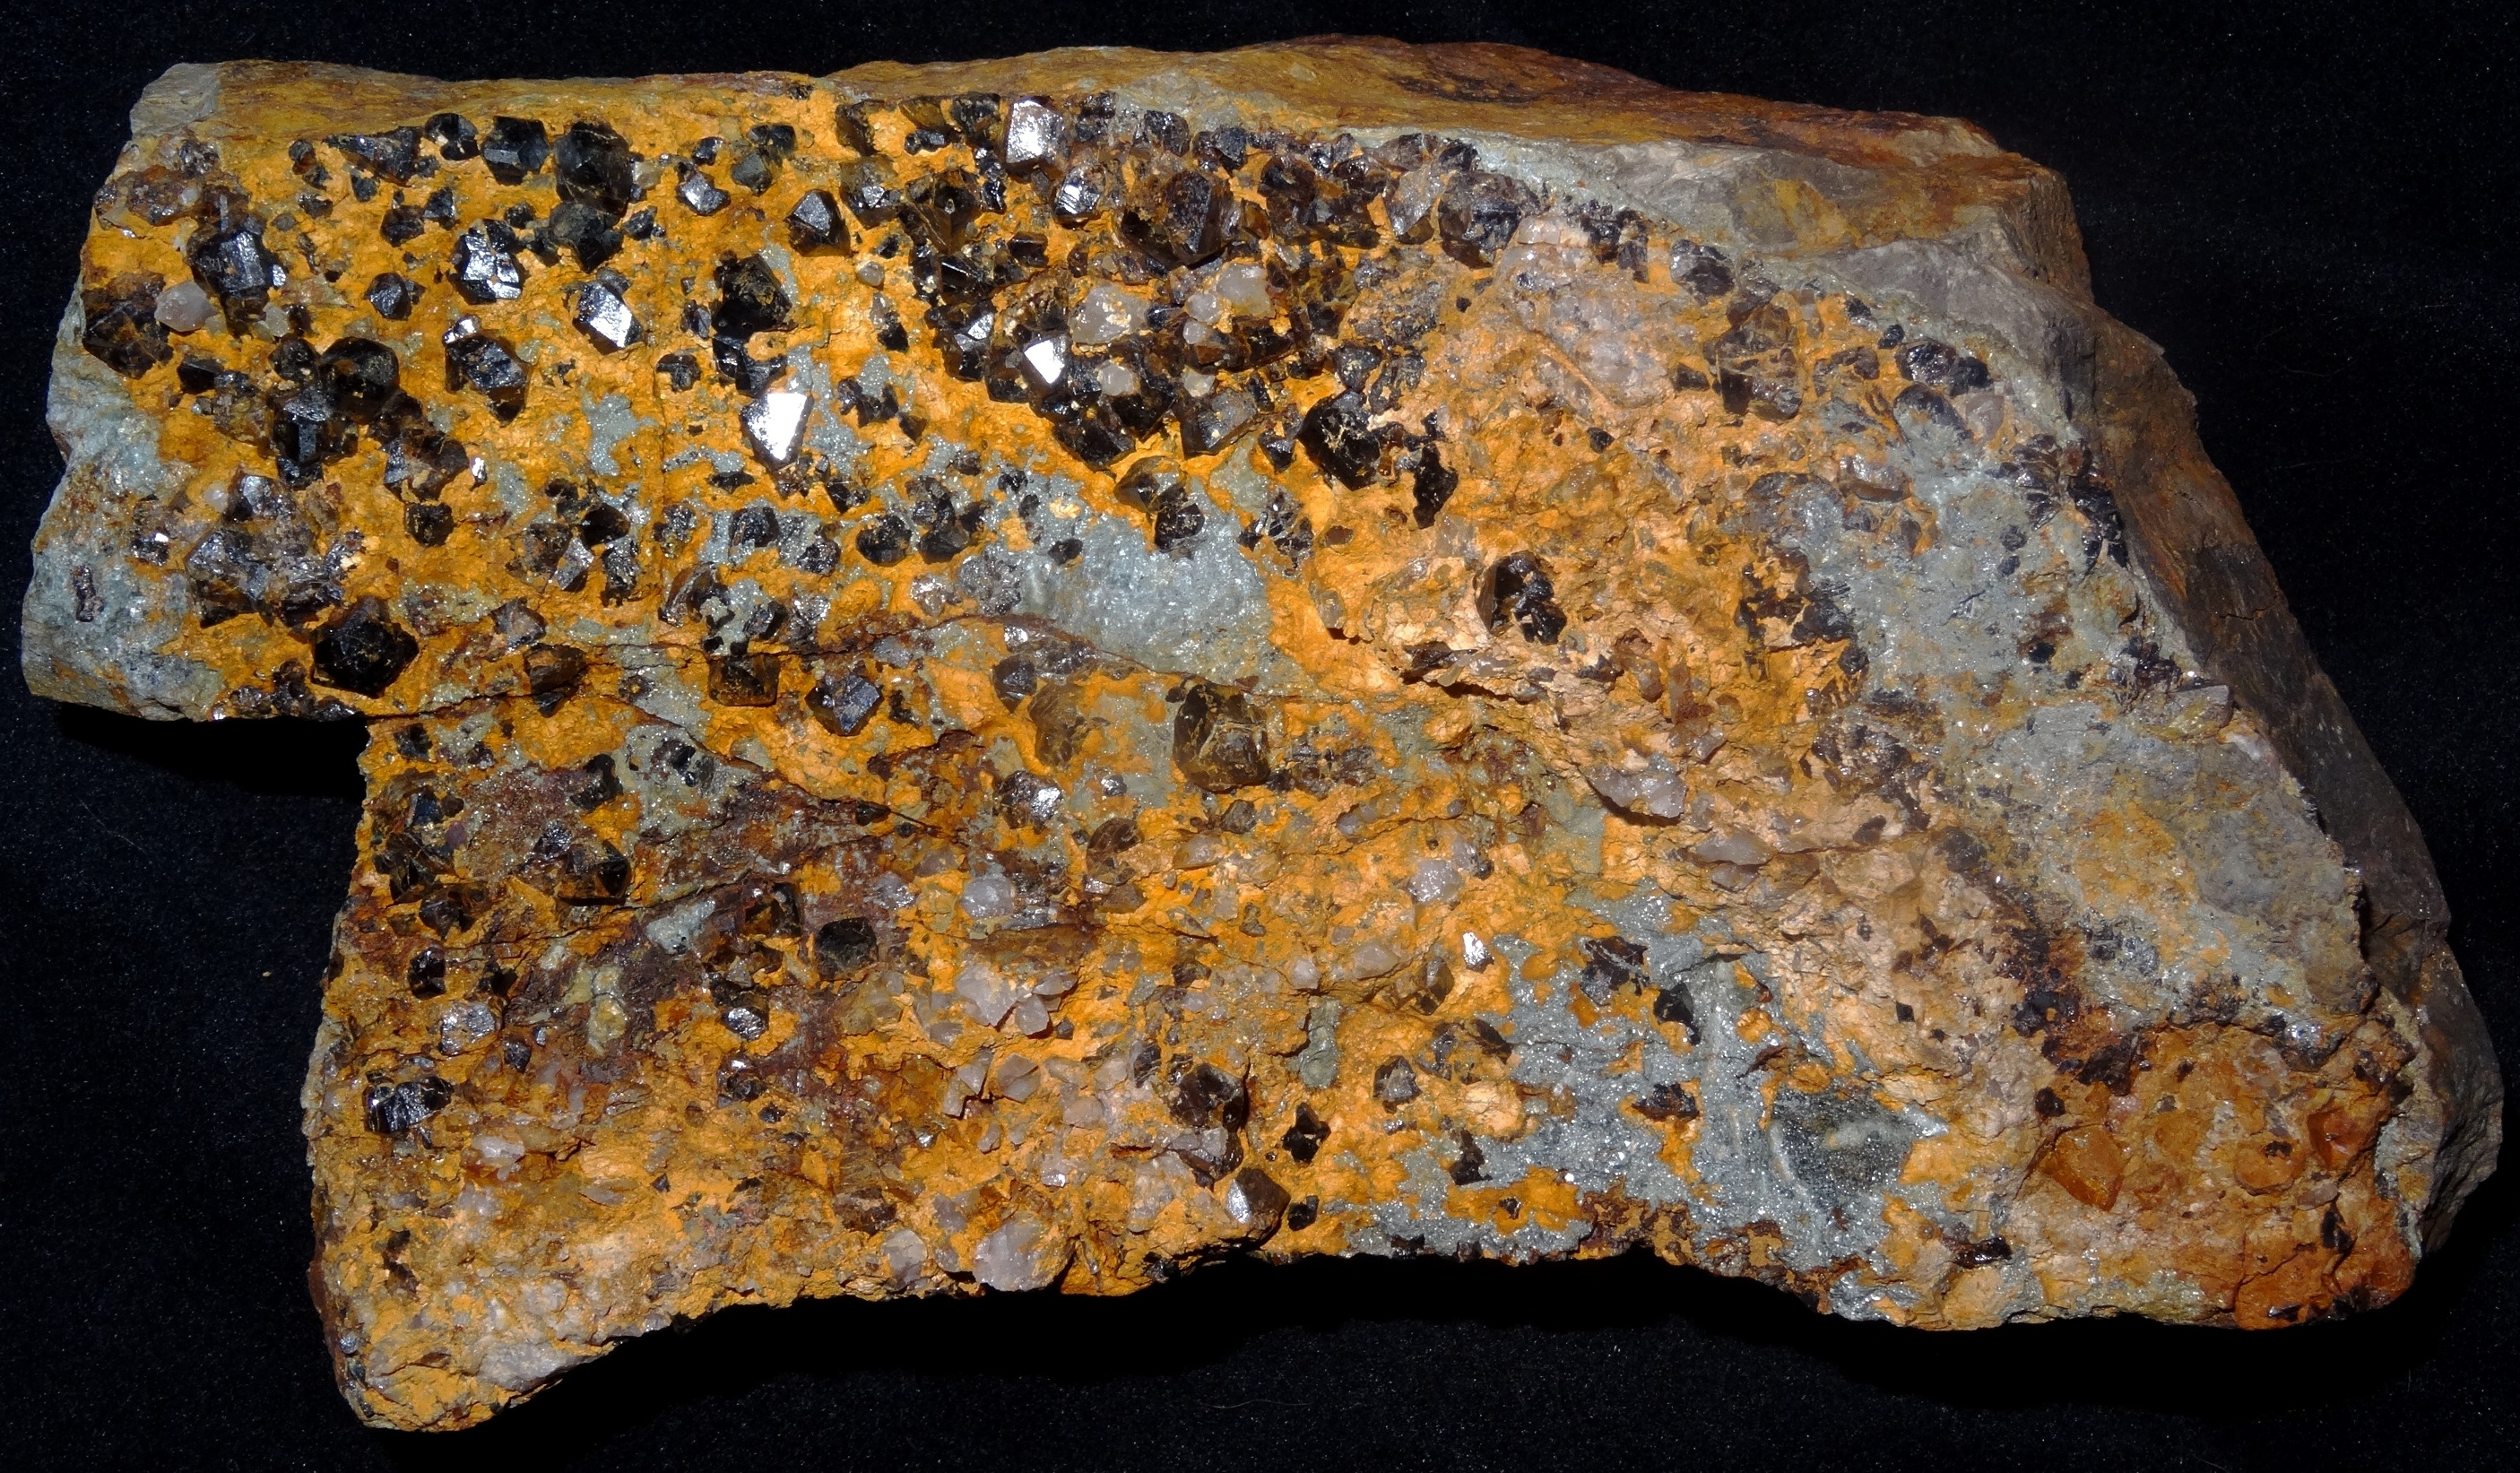 Close up photo of Cligga mineral